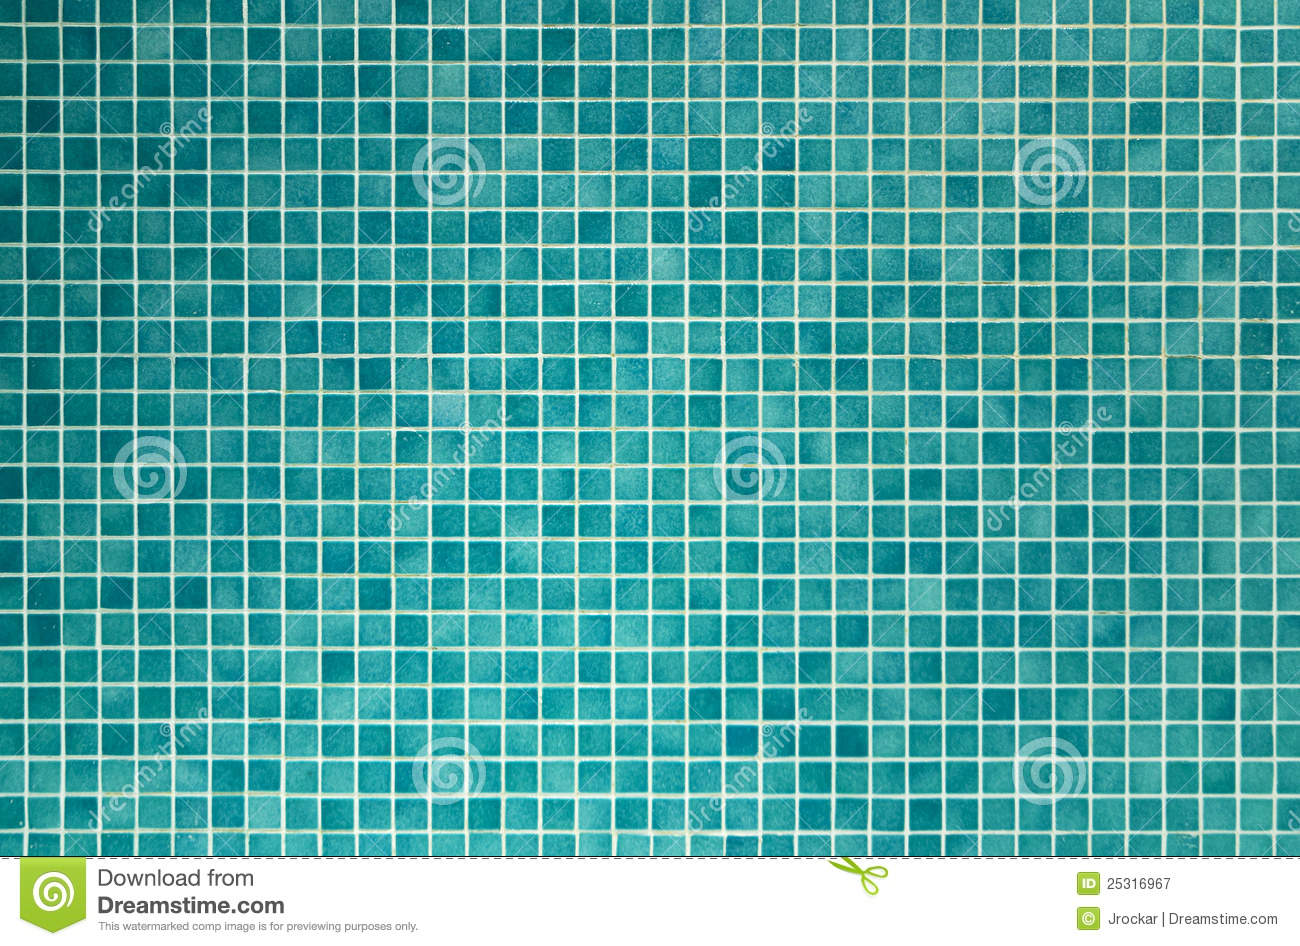 Green Mosaic Tiles For Bathroom And Kitchen Royalty Free ...